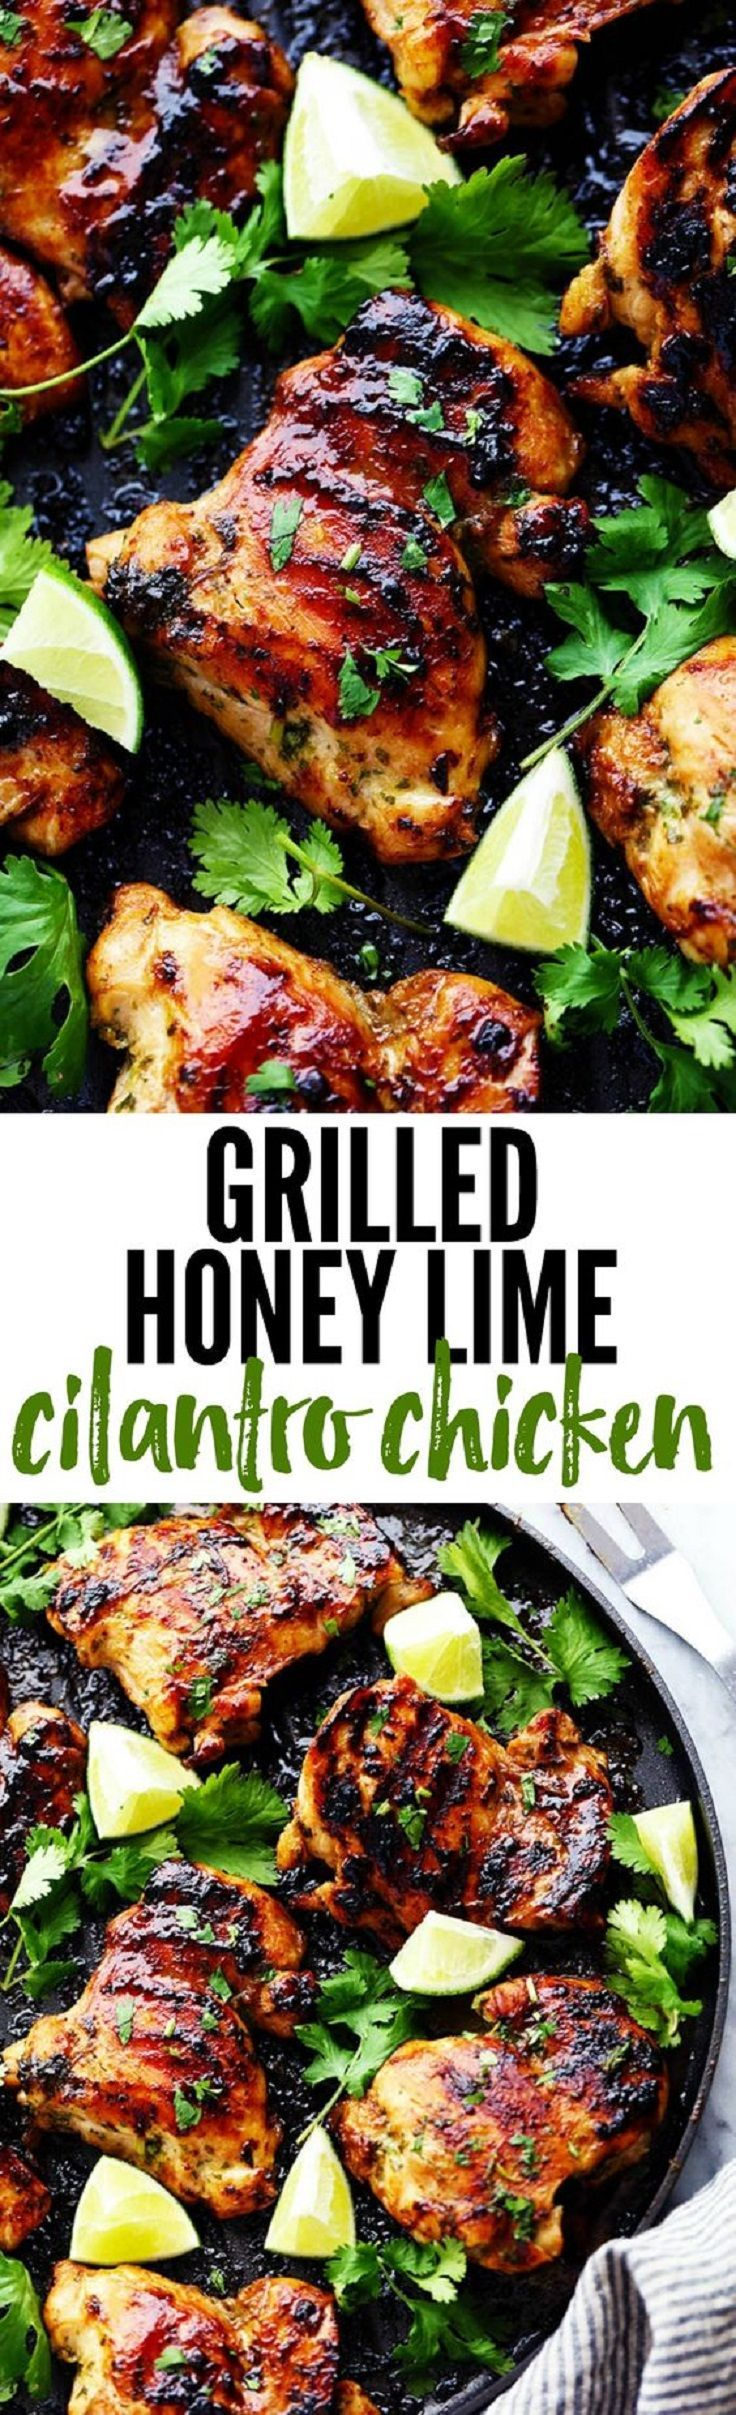 Grilled Honey Lime Cilantro Chicken - 15 Prime Grilled Chicken Recipes That Will Excite Your Palate